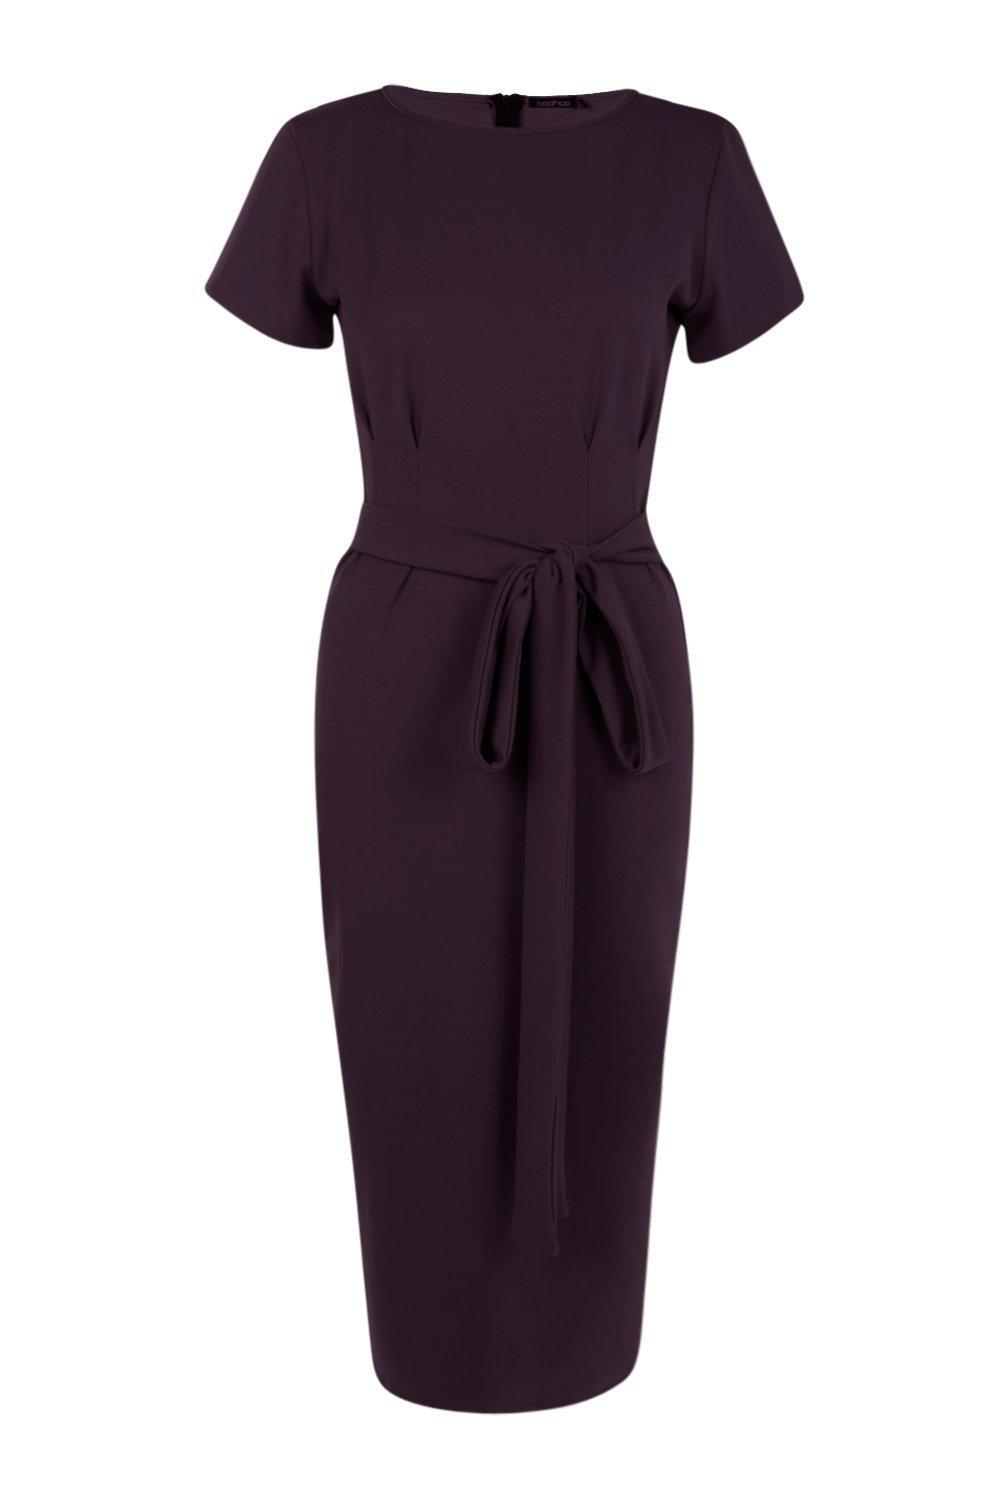 baef2115a6a8 ... Pleat Front Belted Tailored Midi Dress - Lyst. Visit Boohoo. Tap to  visit site